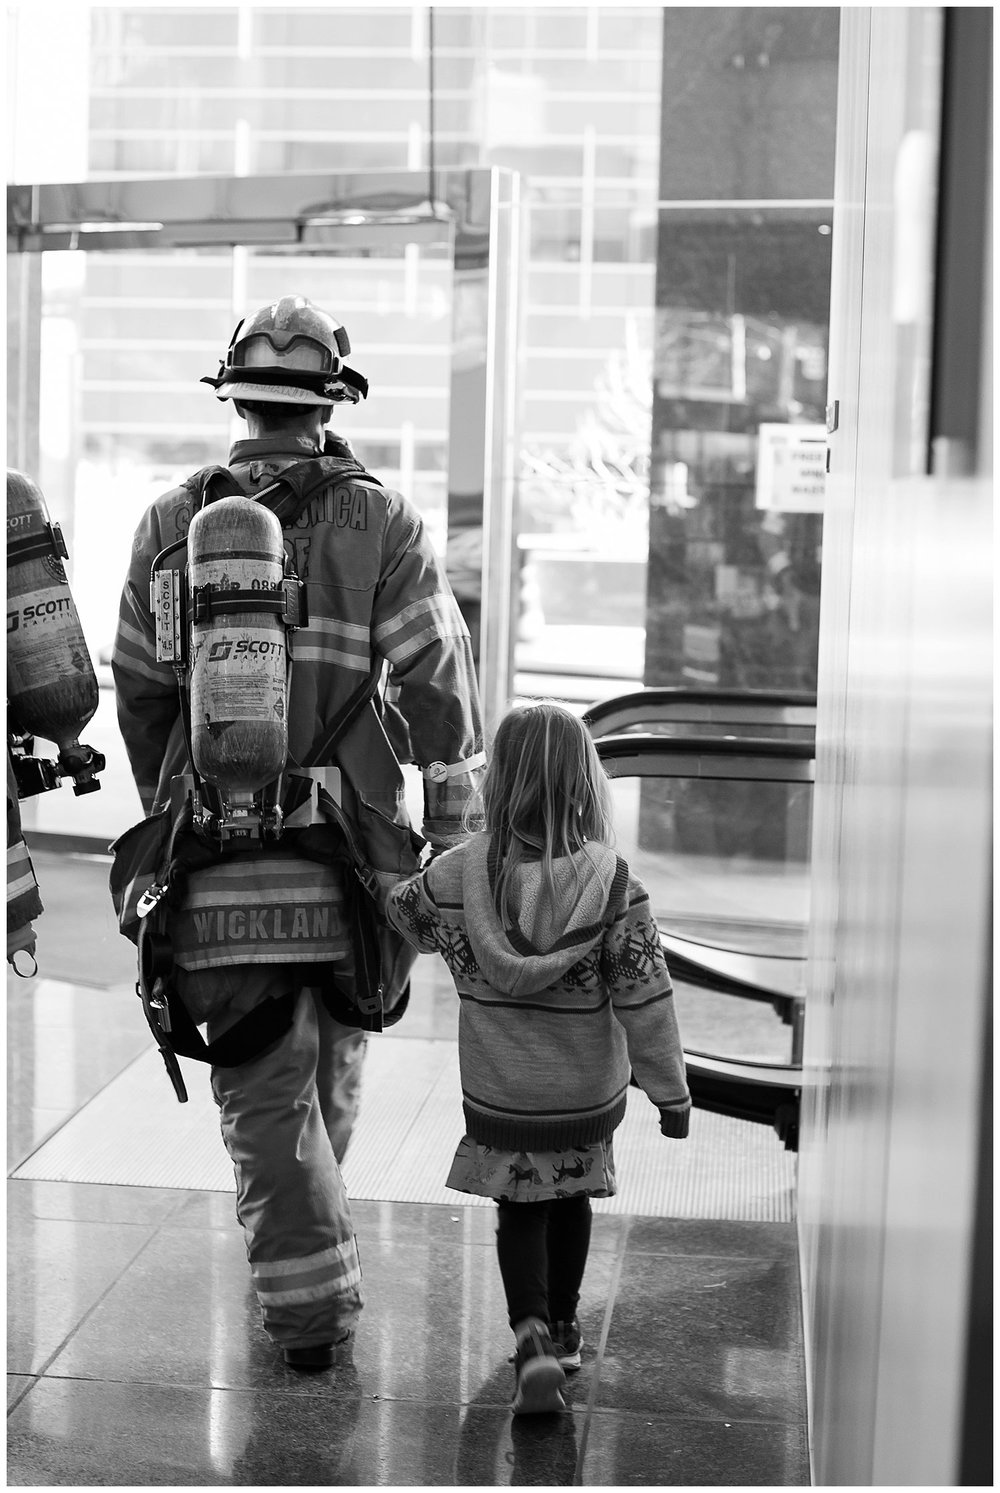 This firefighter wasn't in our group but when I saw him walking out hand in hand with this little girl I thought it was just too darling not to capture! As always thank you for checking out the blog. xo